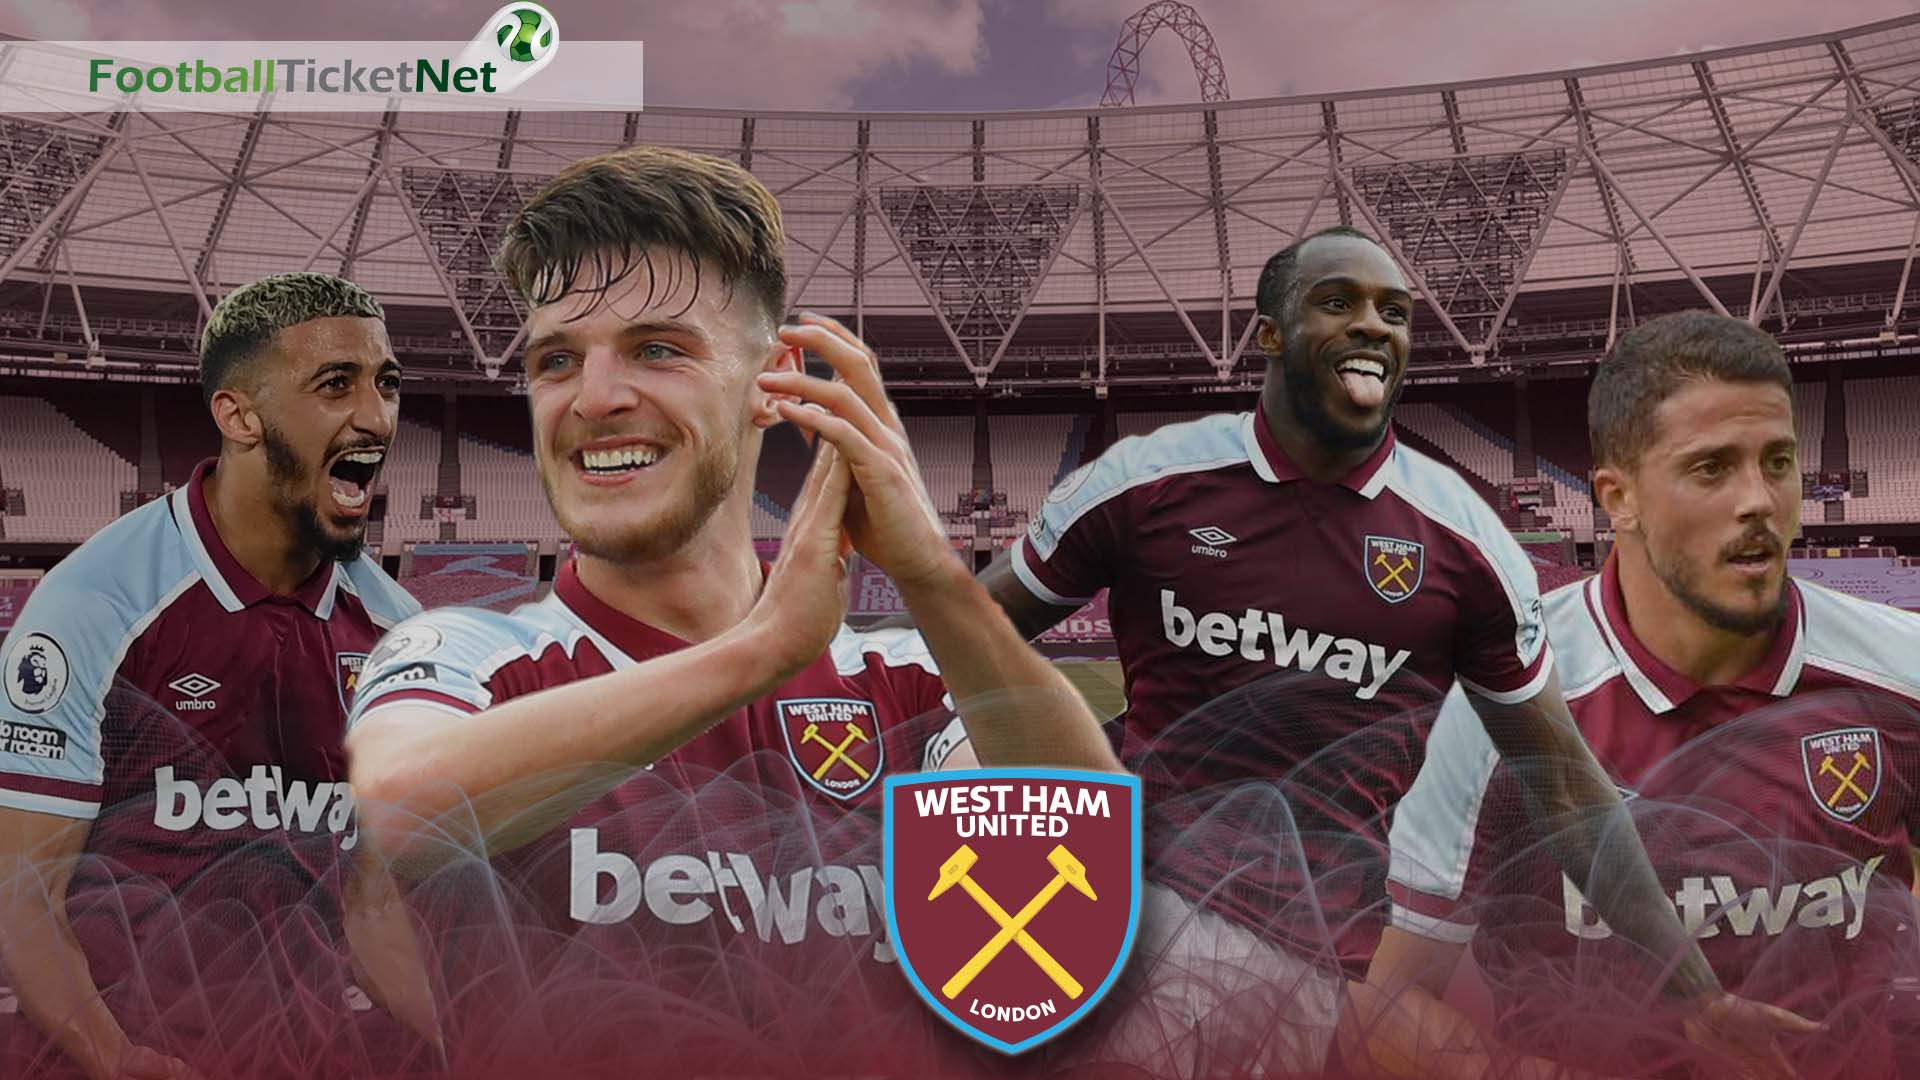 West Ham United liput